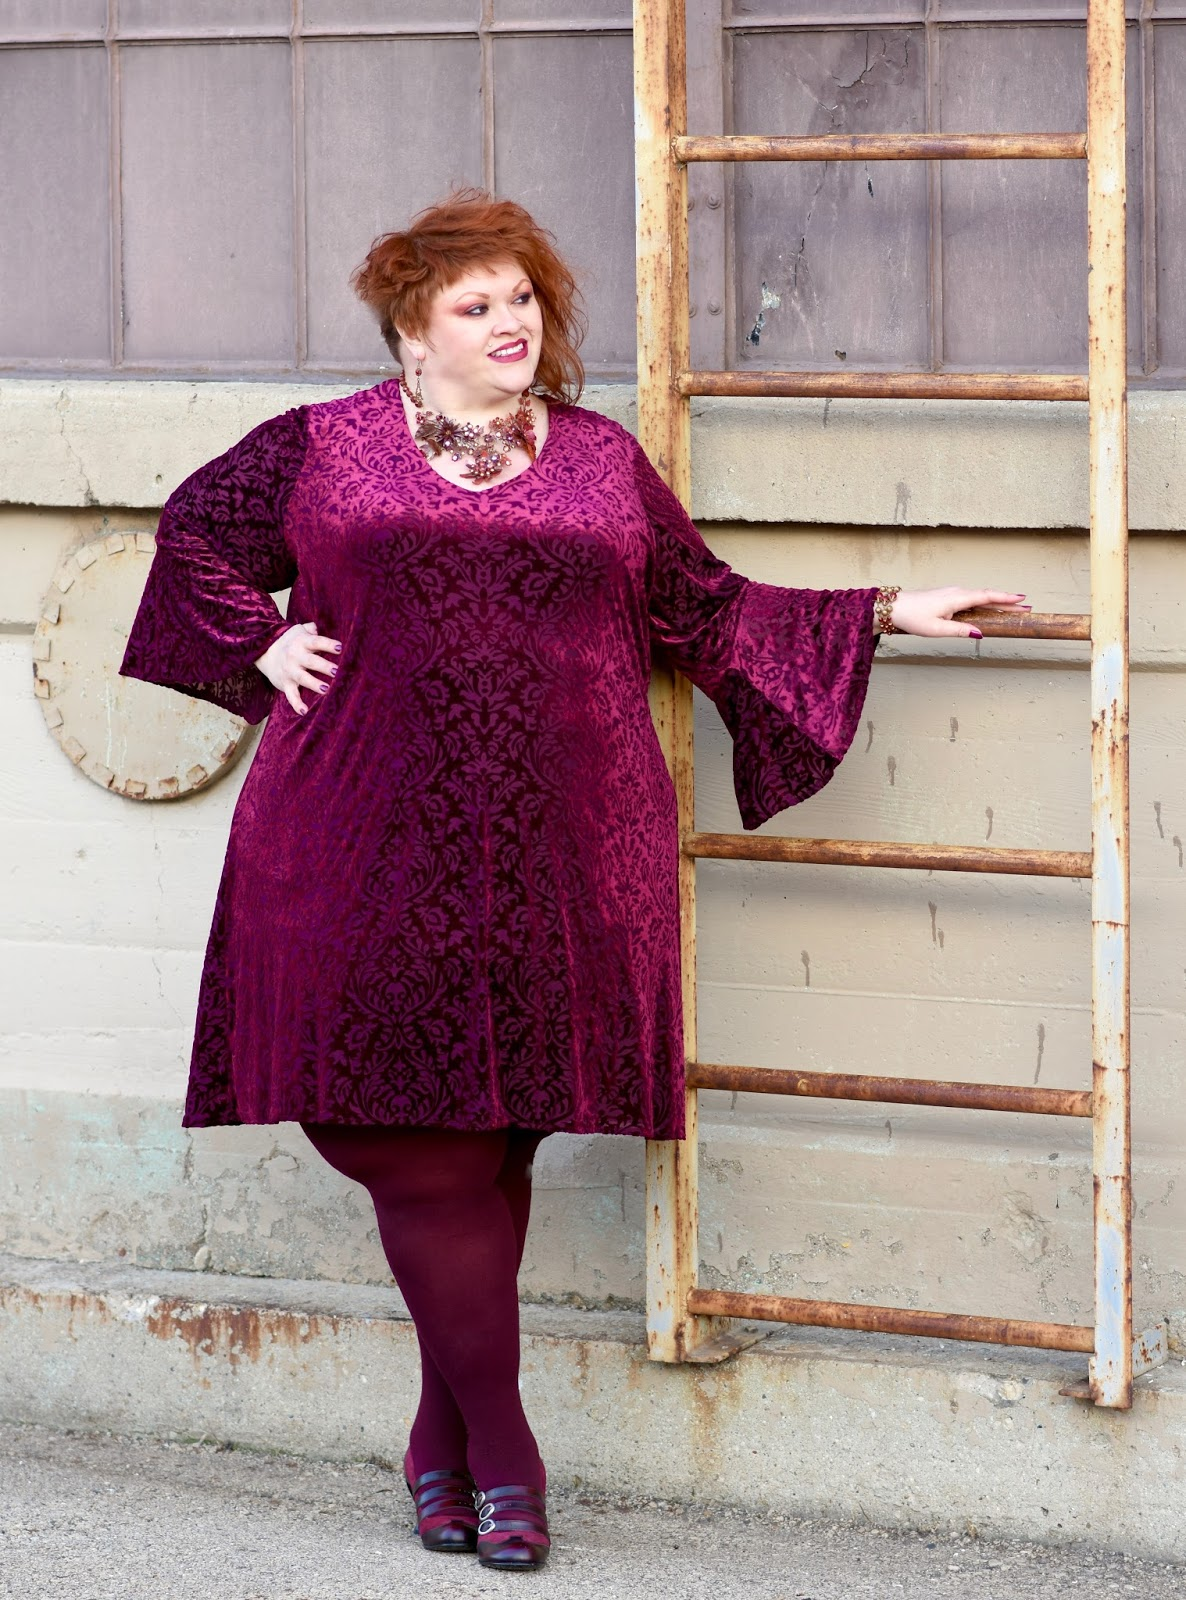 197b849c29 Dress  Bell Sleeve V-Neck Dress in Purple by Kaktus (size 4x) via Gwynnie  Bee (use my link to get your first month free   help me earn GB credit)